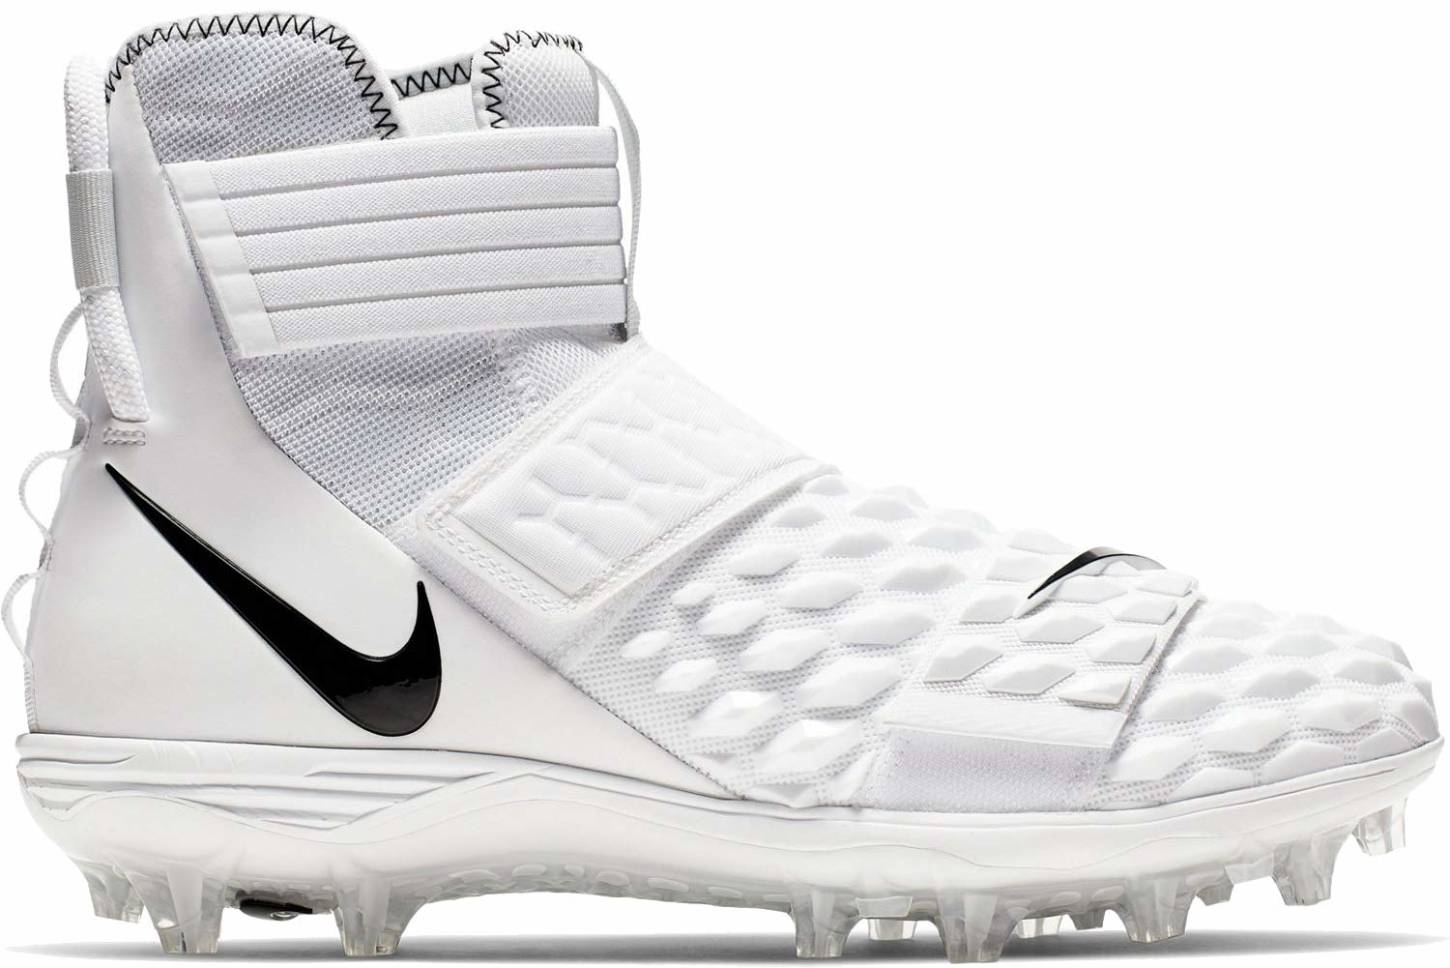 Save 59% on White Football Cleats (23